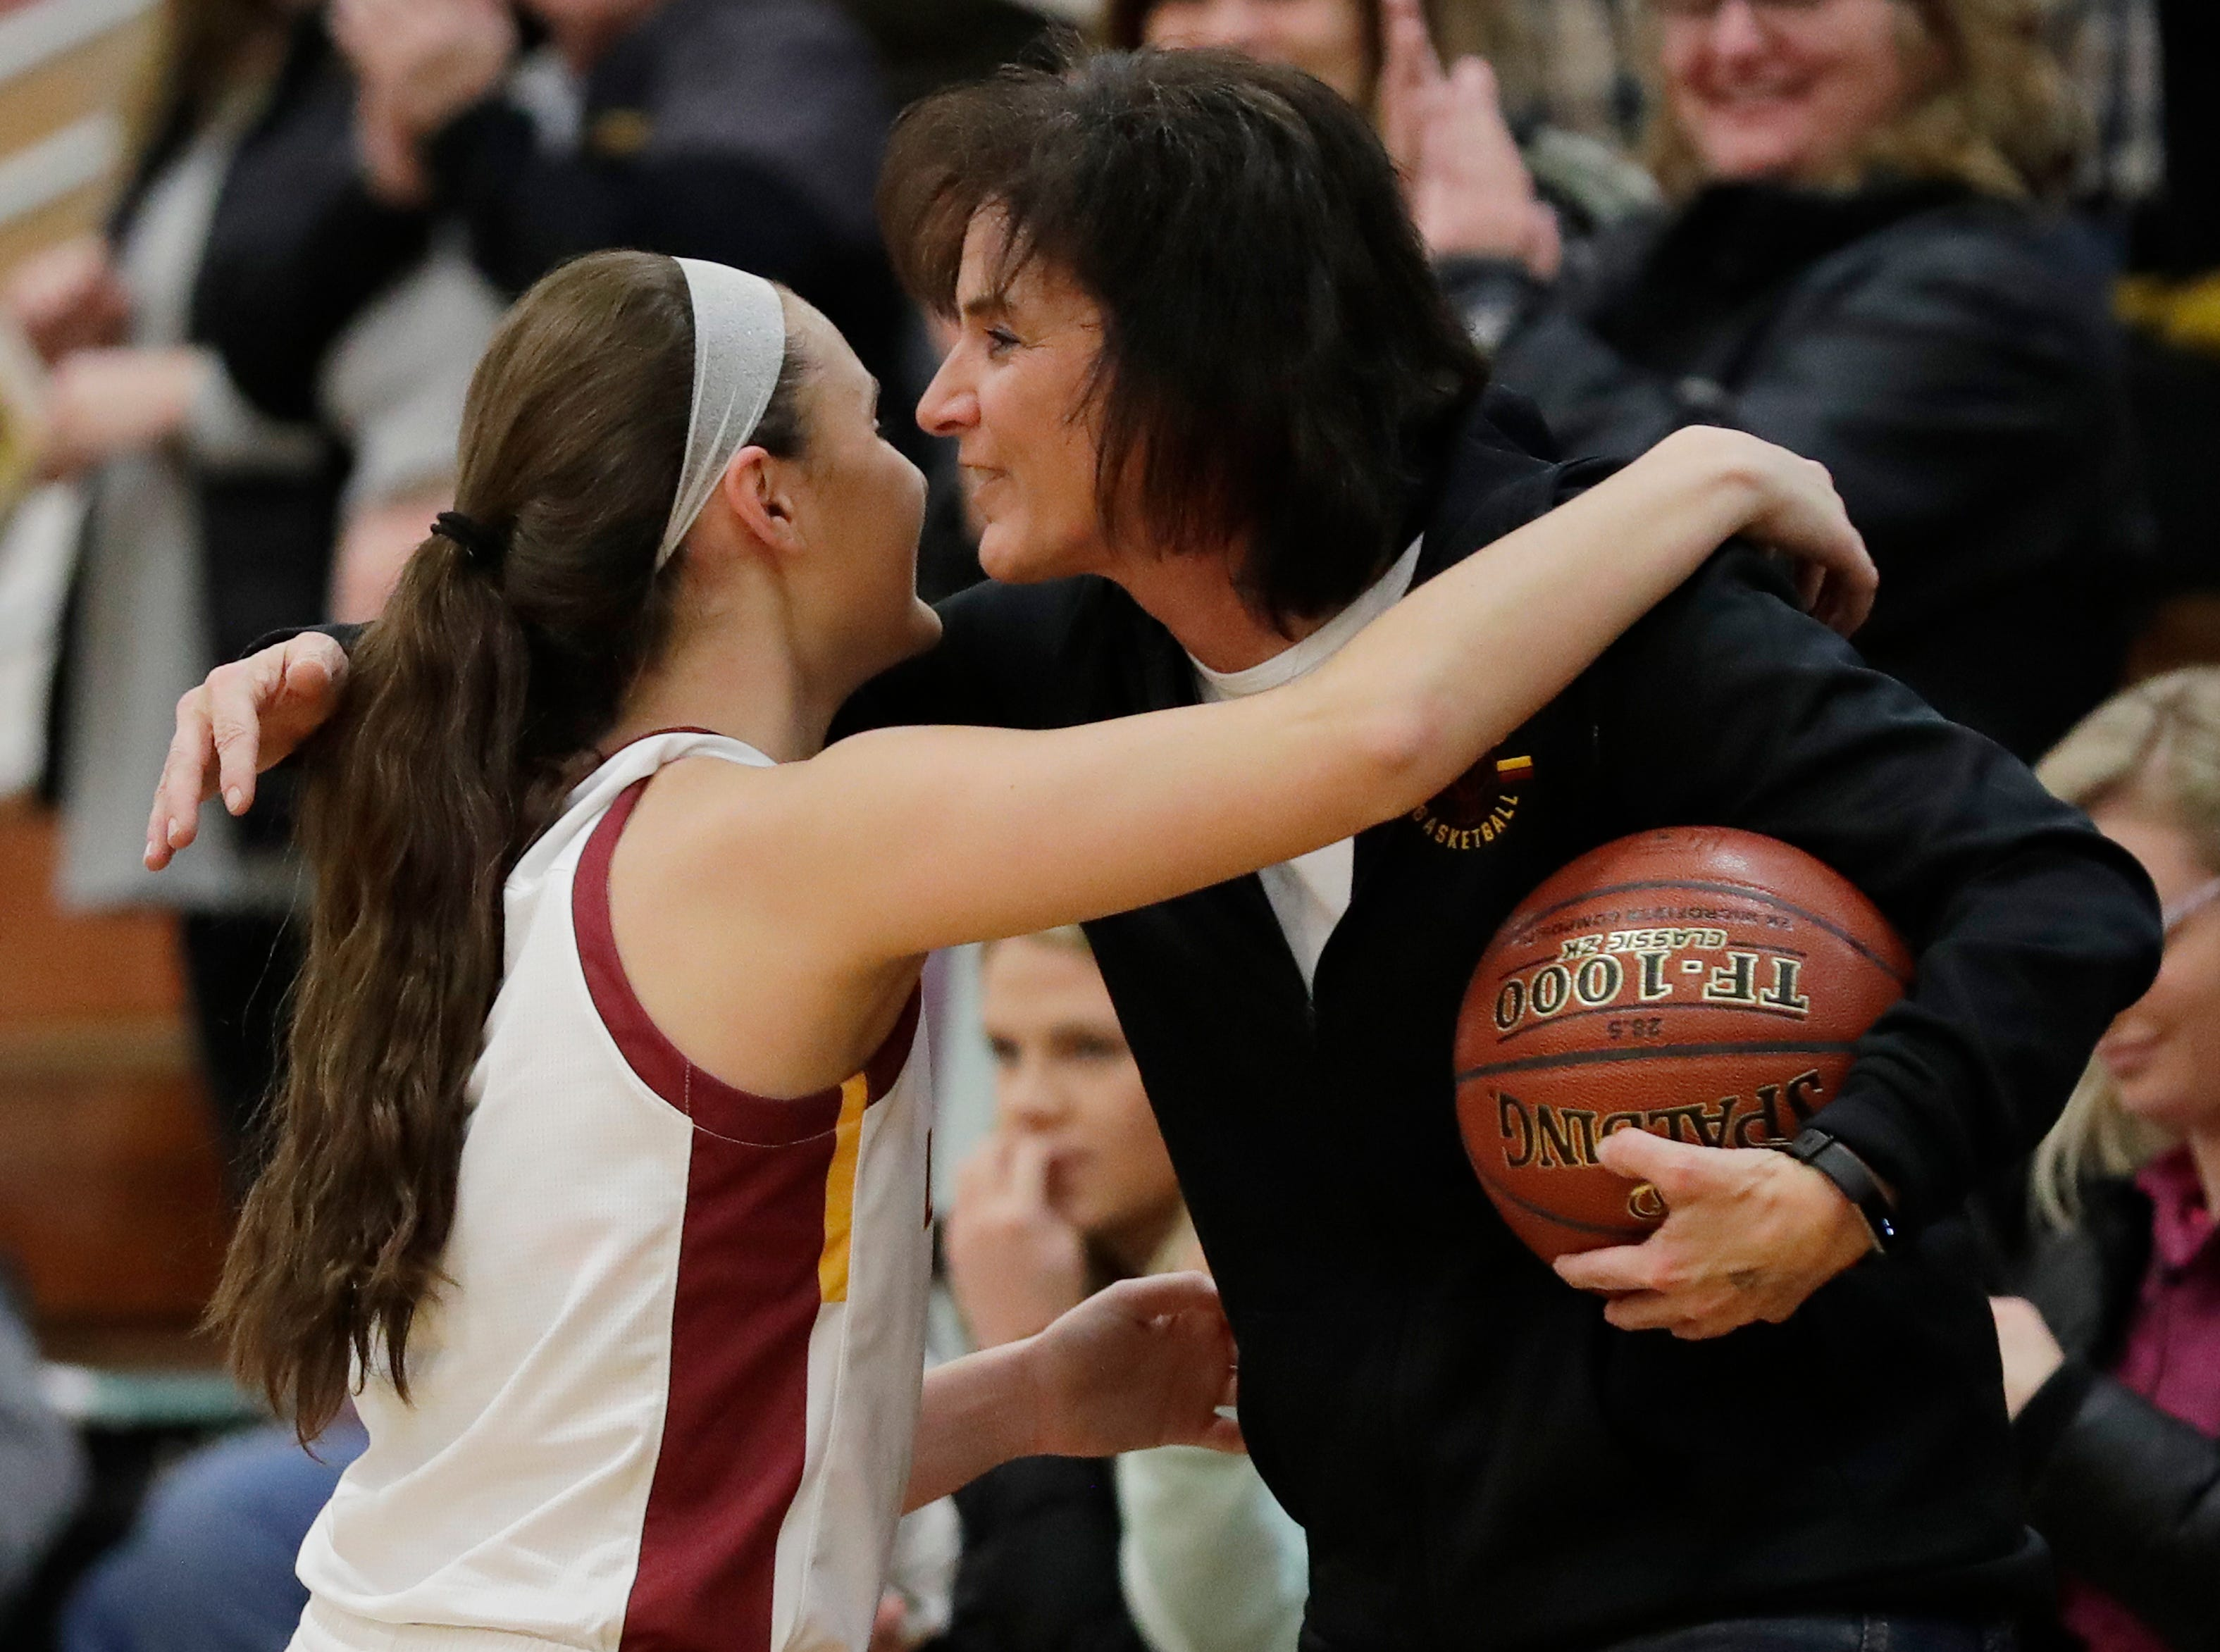 Luxemburg-Casco's Cassie Schiltz (3) hugs her mom after breaking the school's all-time scoring record with her 1679th point in a girls basketball game against Waupaca at Luxemburg-Casco high school on Thursday, January 10, 2019 in Luxemburg, Wis. The record was previously set at 1678 by Rachel Porath in 2004.